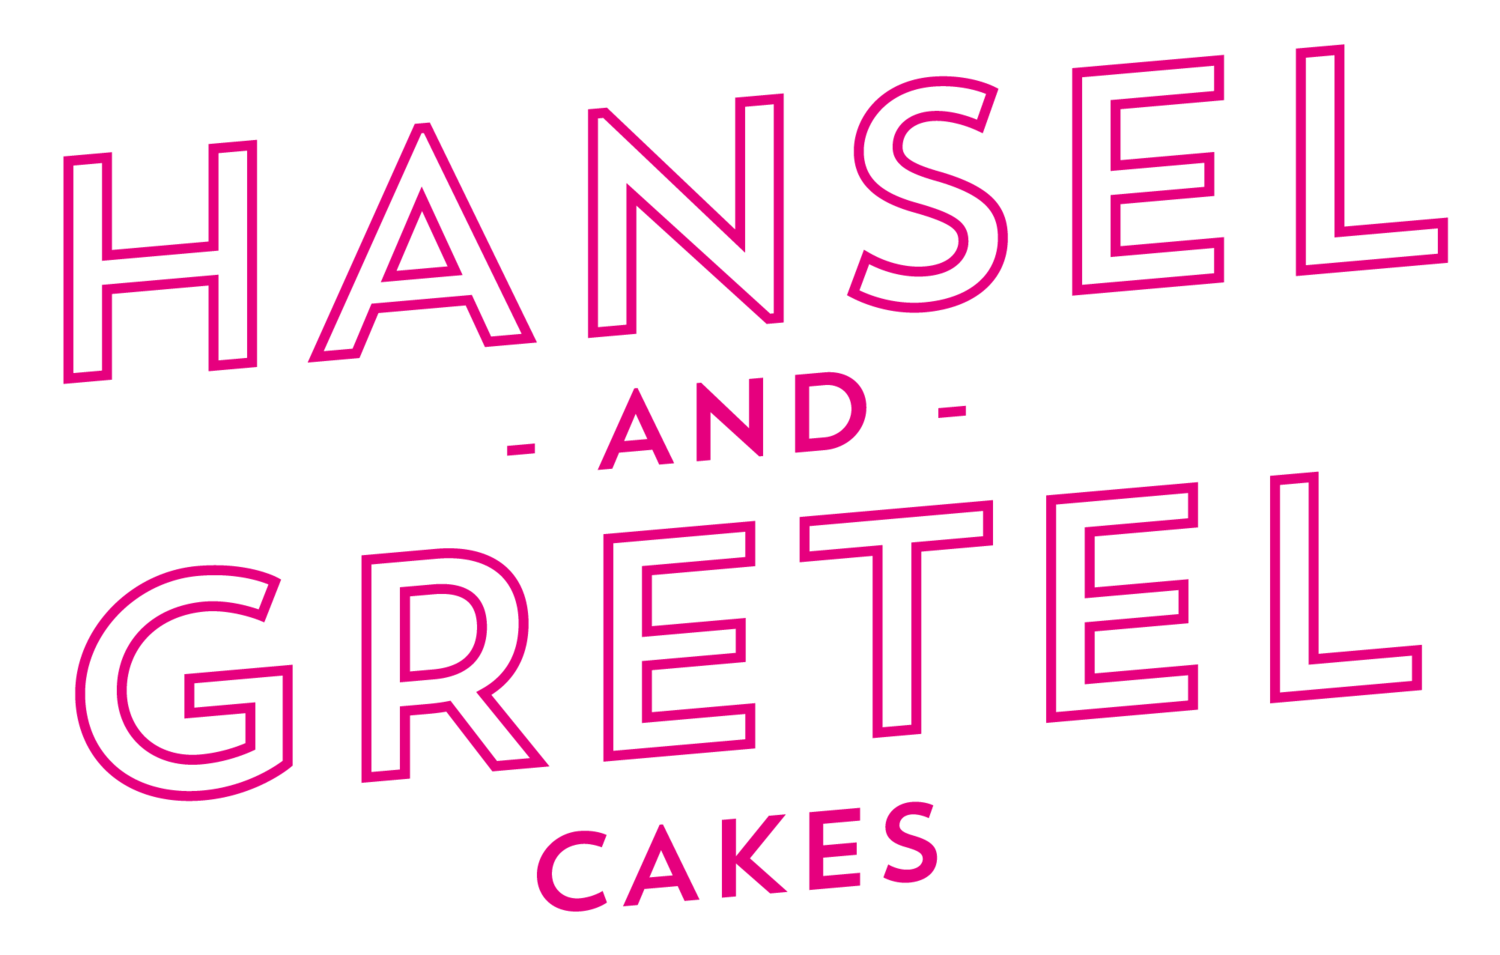 Hansel and Gretel Cakes